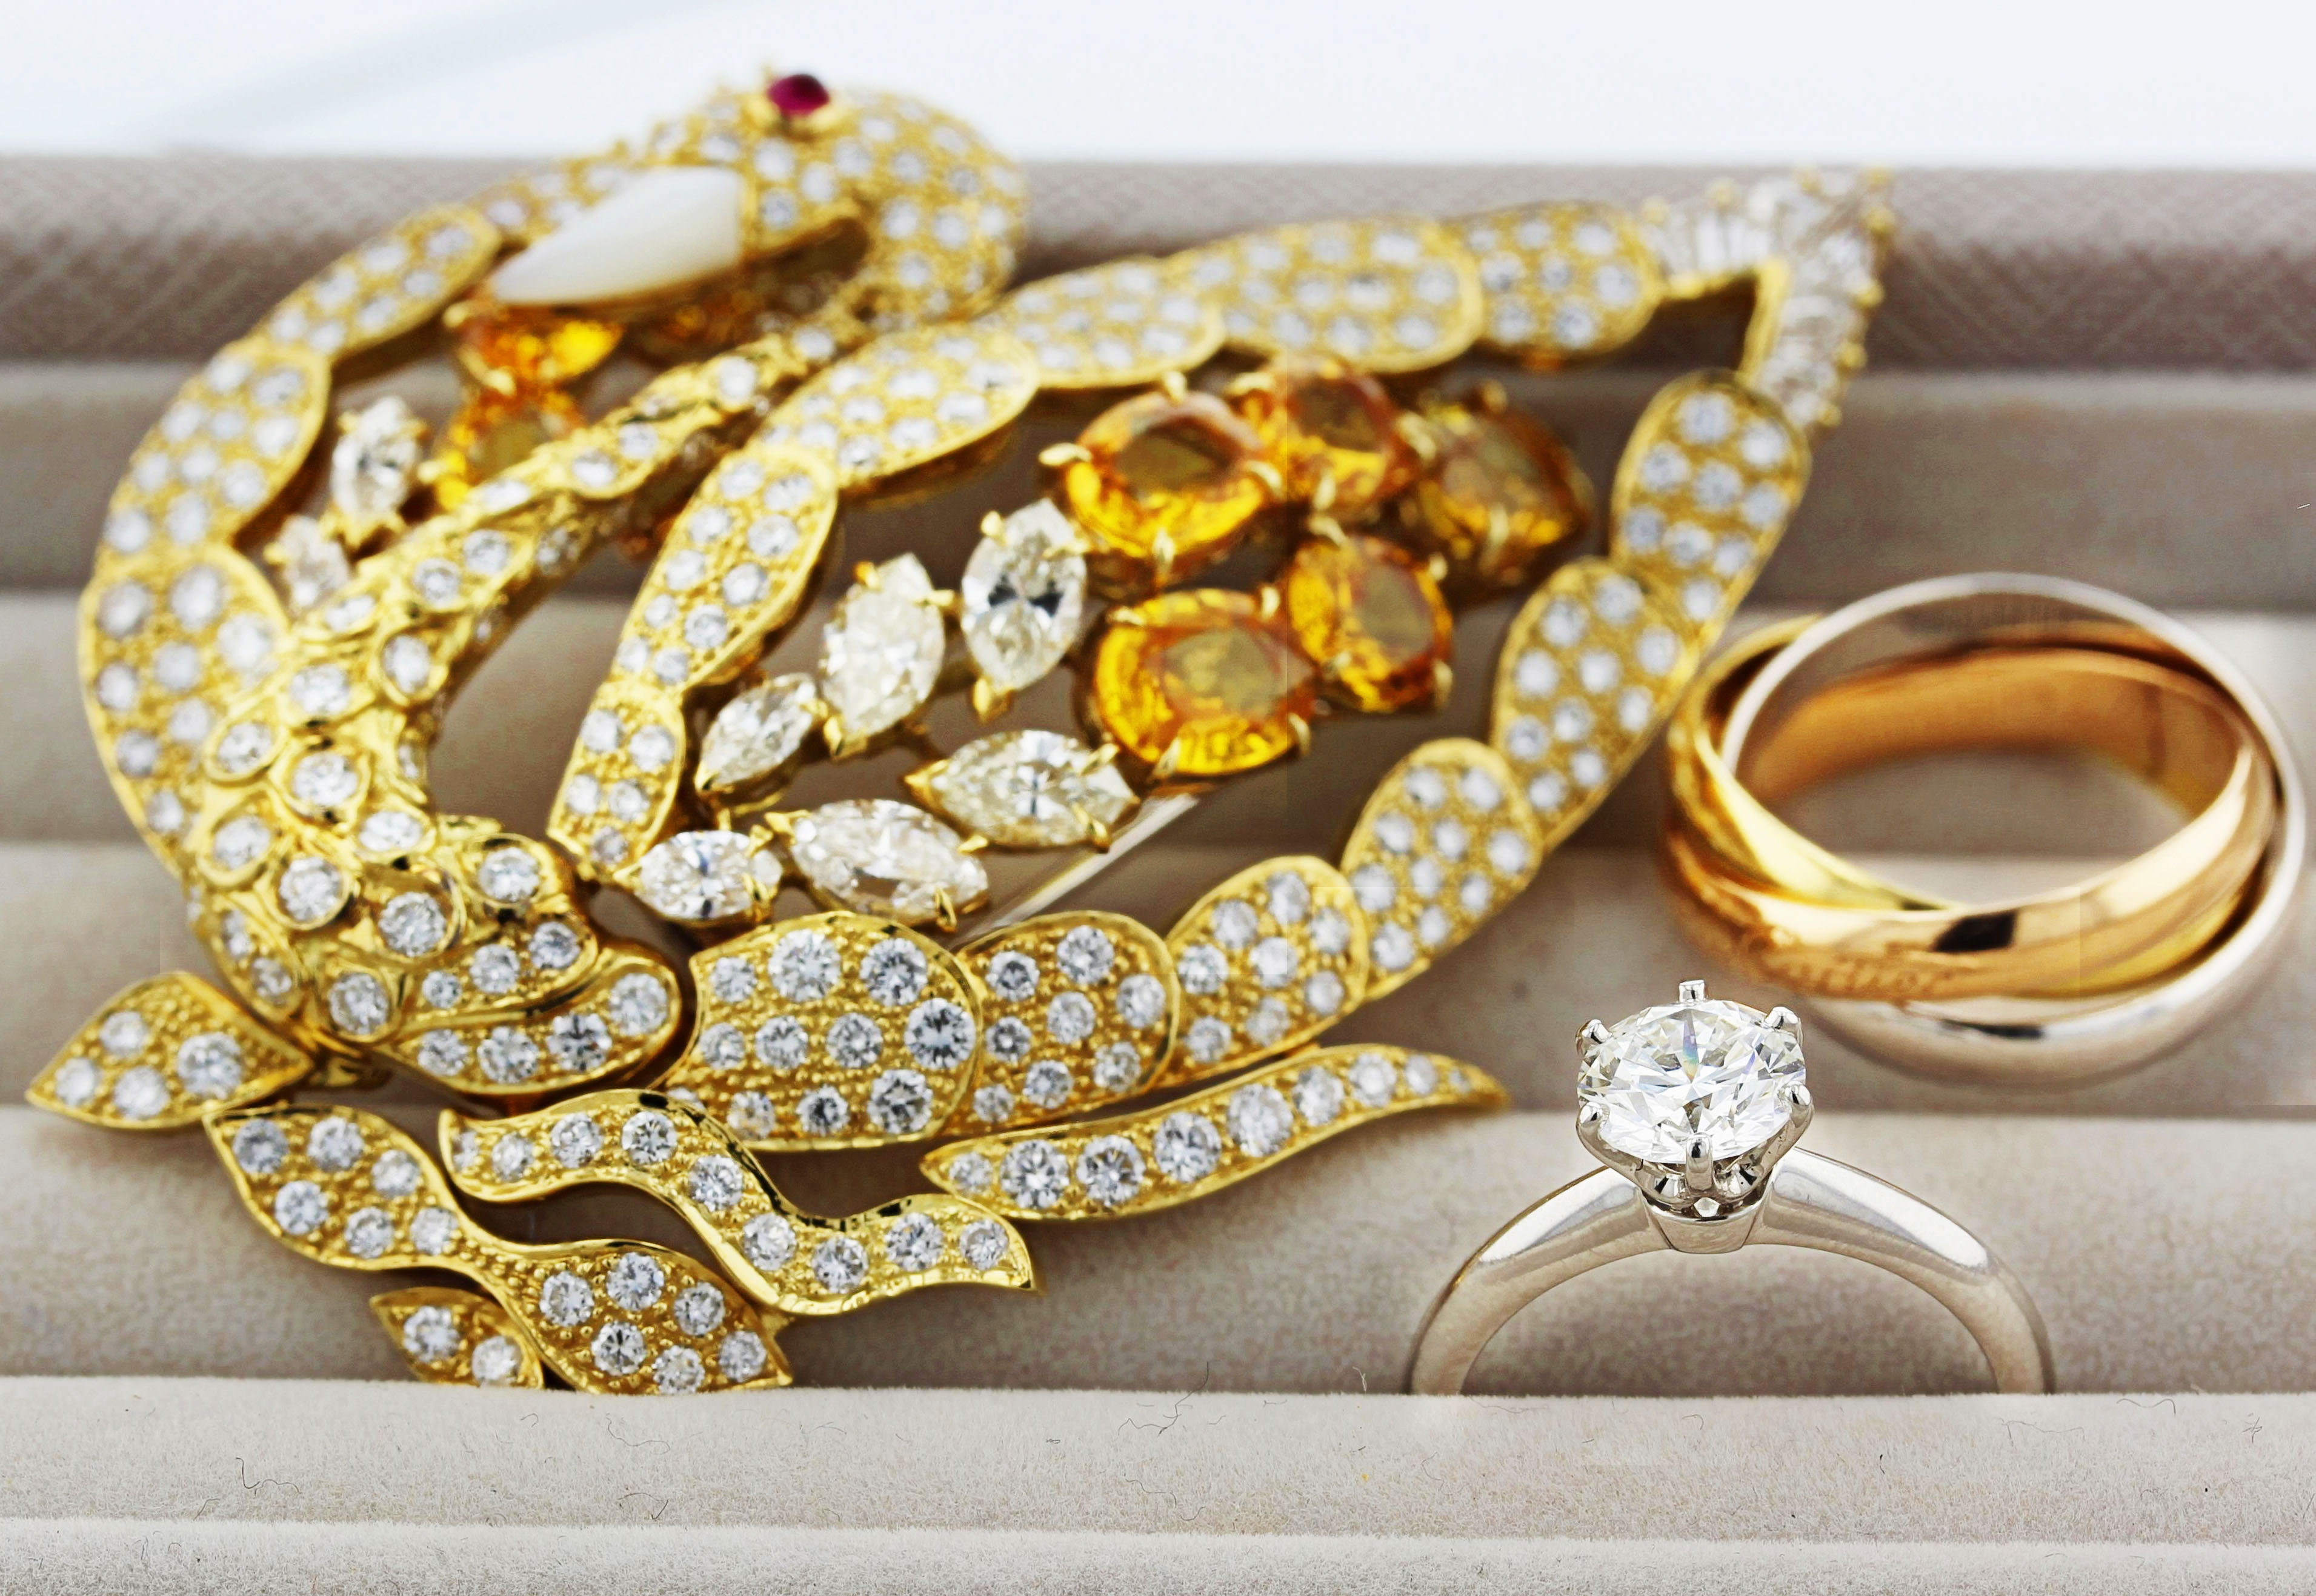 January clearout, sell your unwanted jewellery